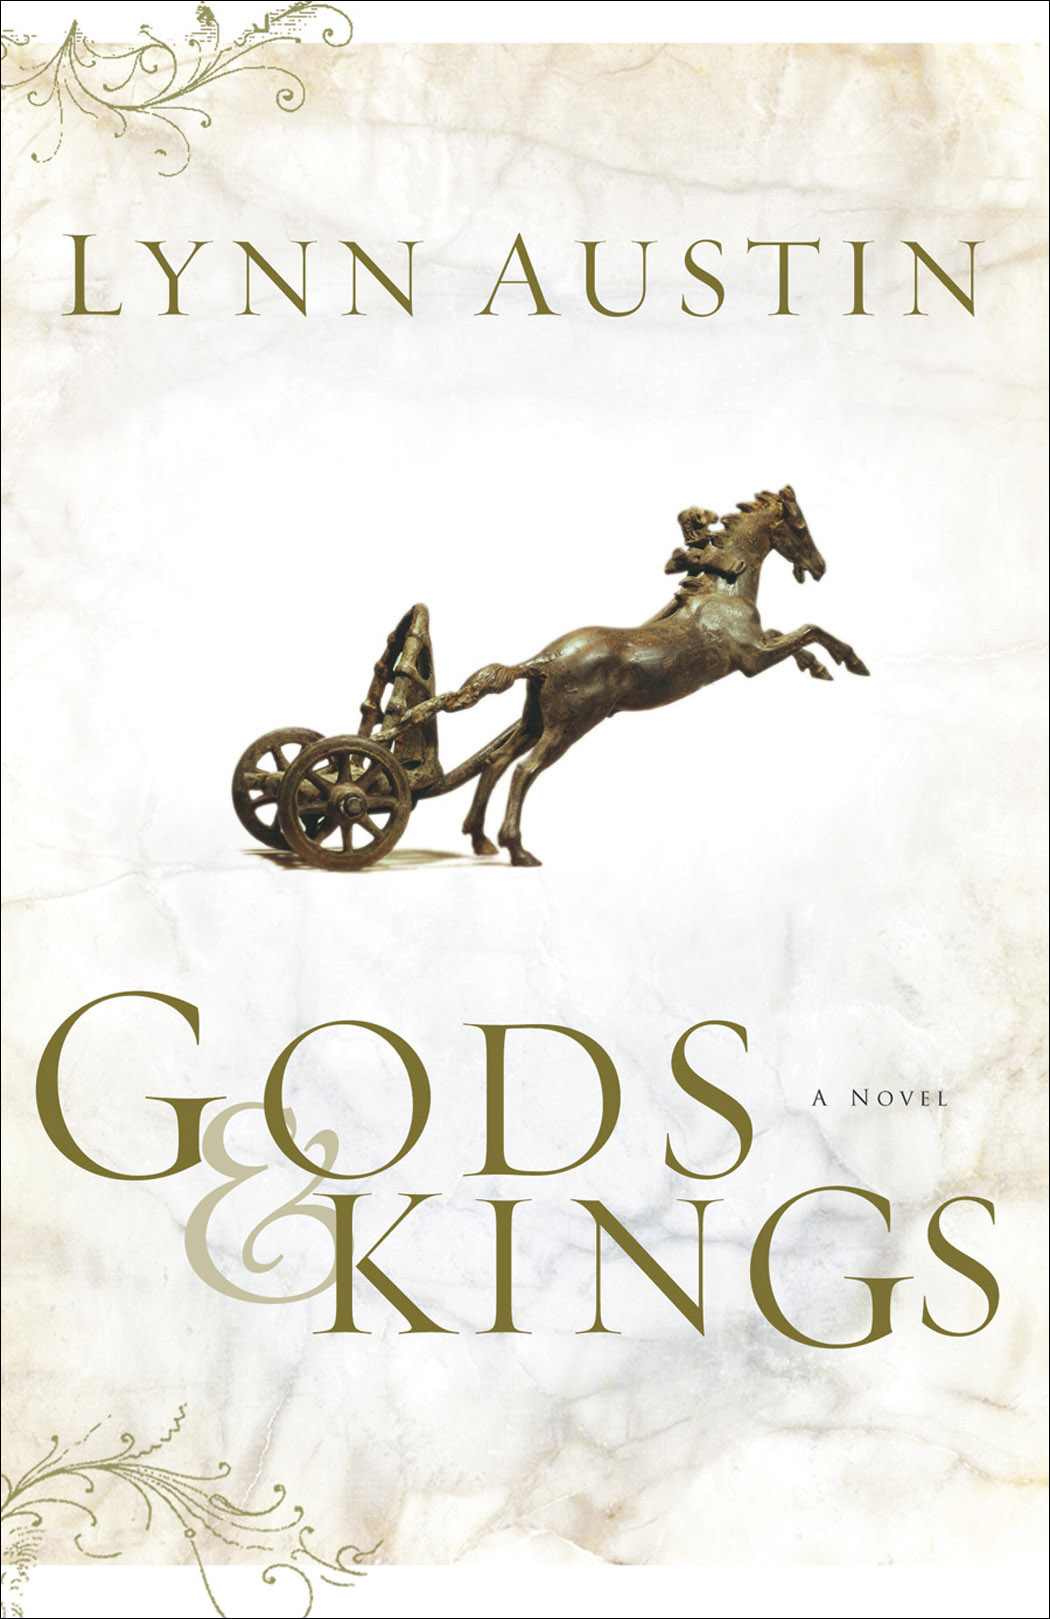 Gods & Kings by Lynn Austin